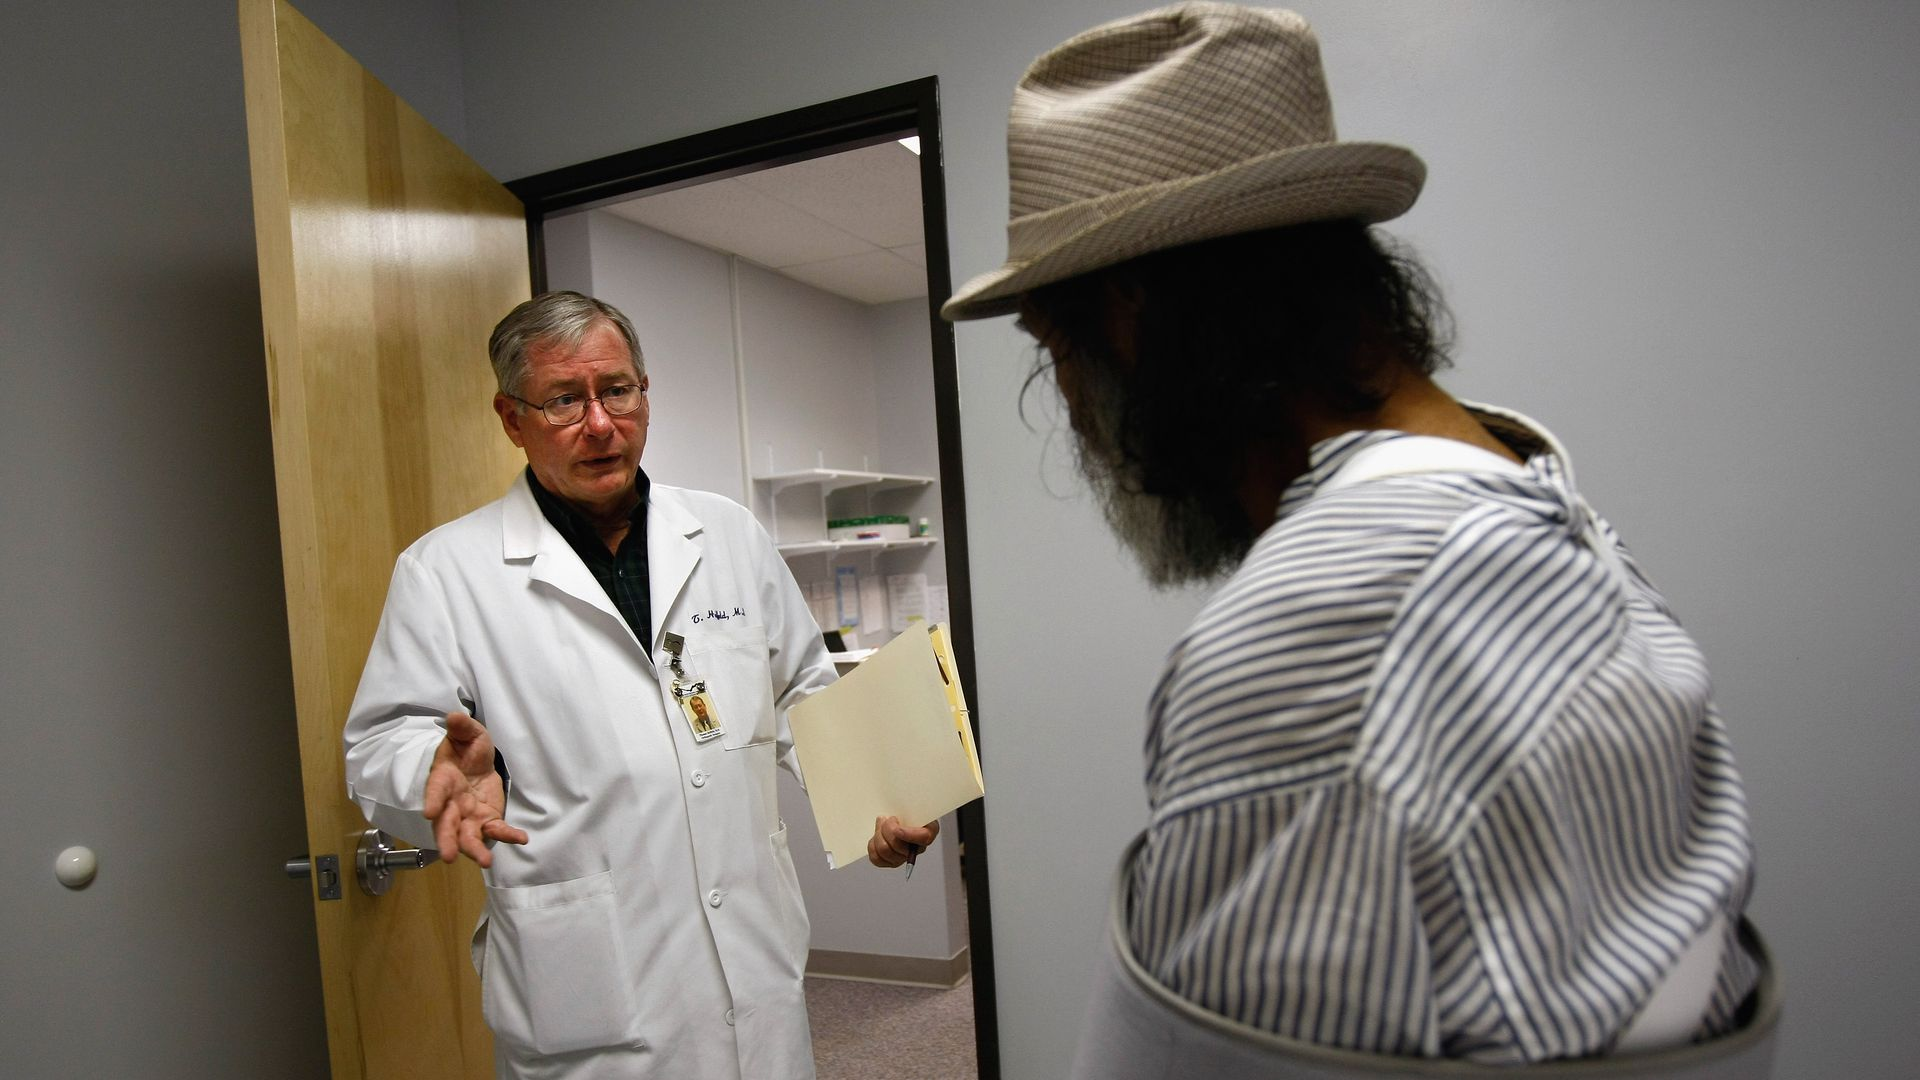 A doctor speaks with a Medicaid patient in a clinic.